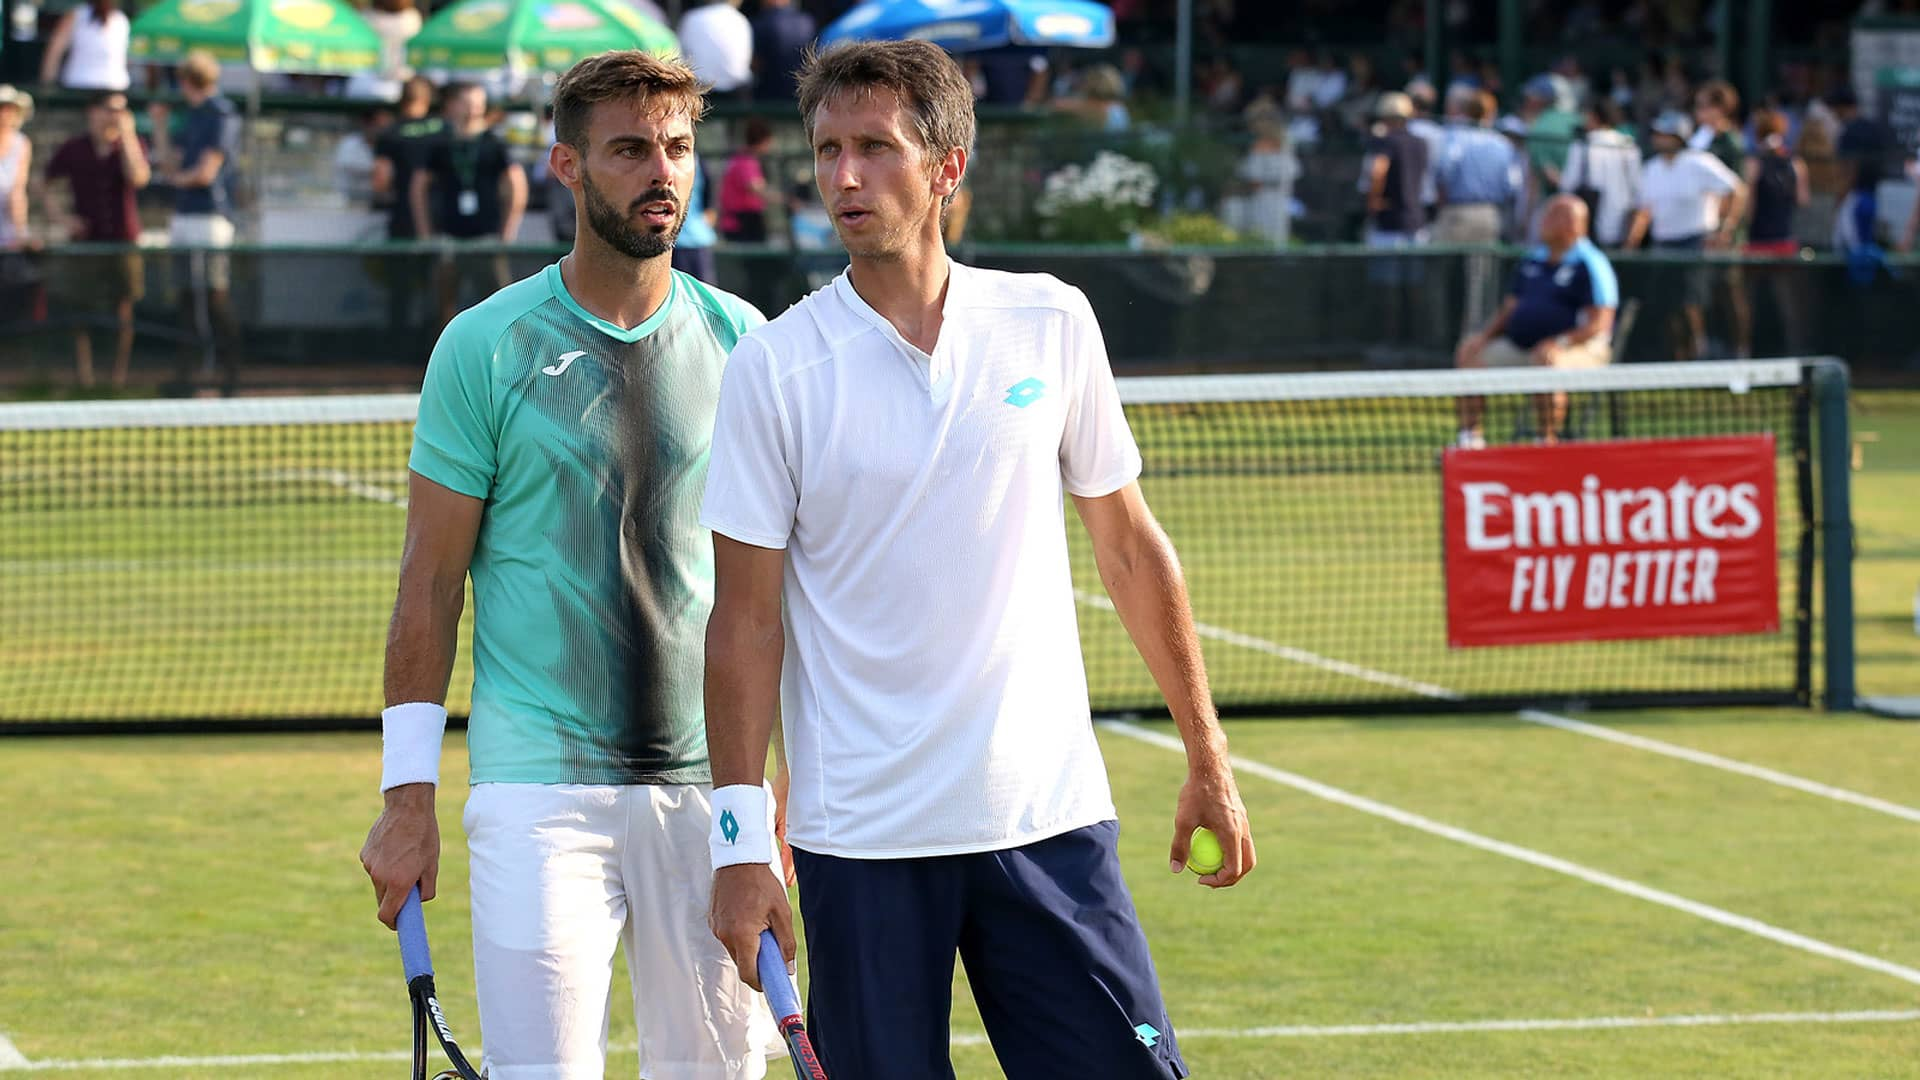 Marcel Granollers and Sergiy Stakhovsky in Newport 2019